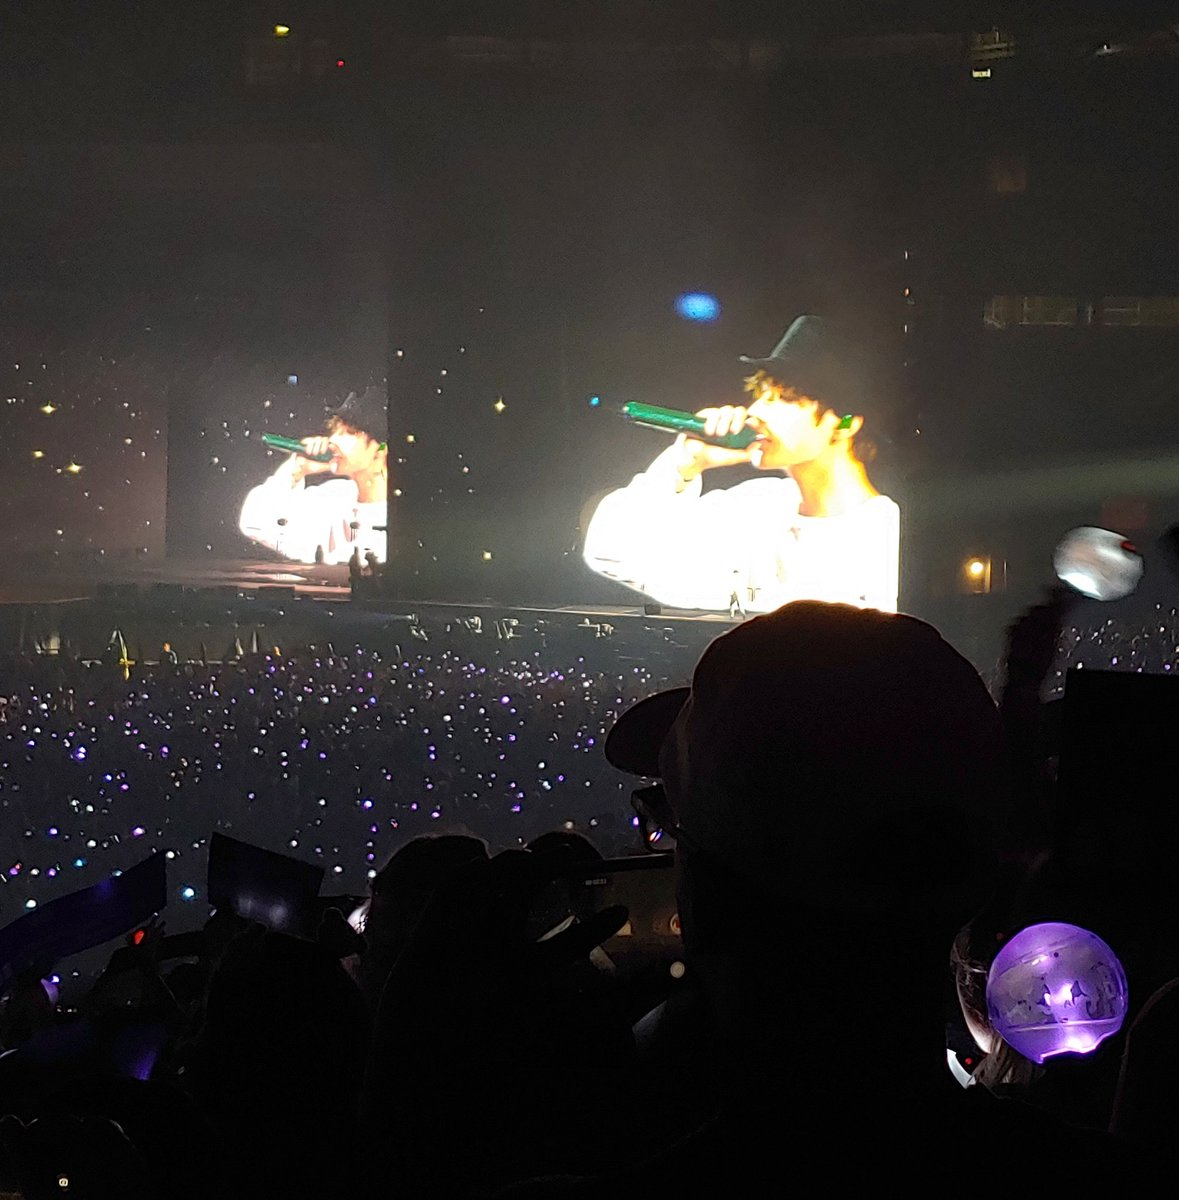 I had slightly better luck with photos tonight. I love all of Tae&#39;s hats!   @BTS_twt #BTSatMetlife_D2<br>http://pic.twitter.com/zBefOpd60T